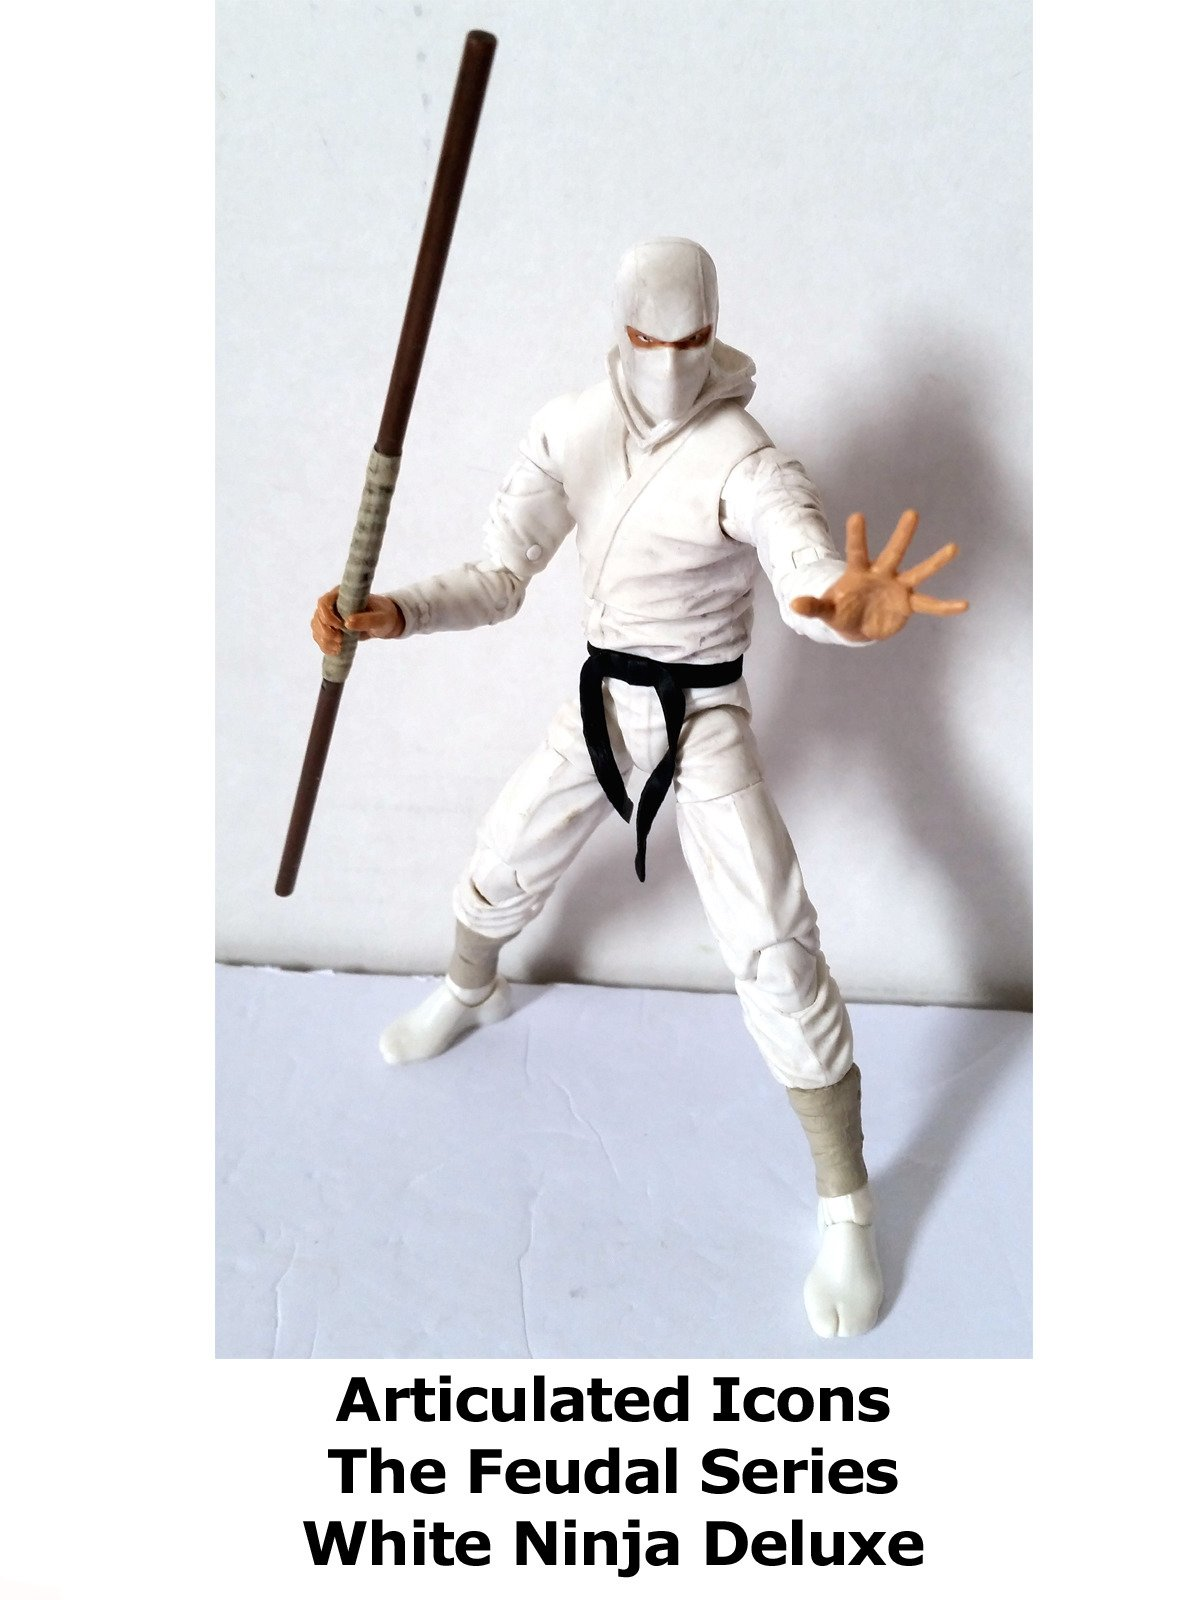 Review: Articulated Icons The Feudal Series White Ninja Deluxe